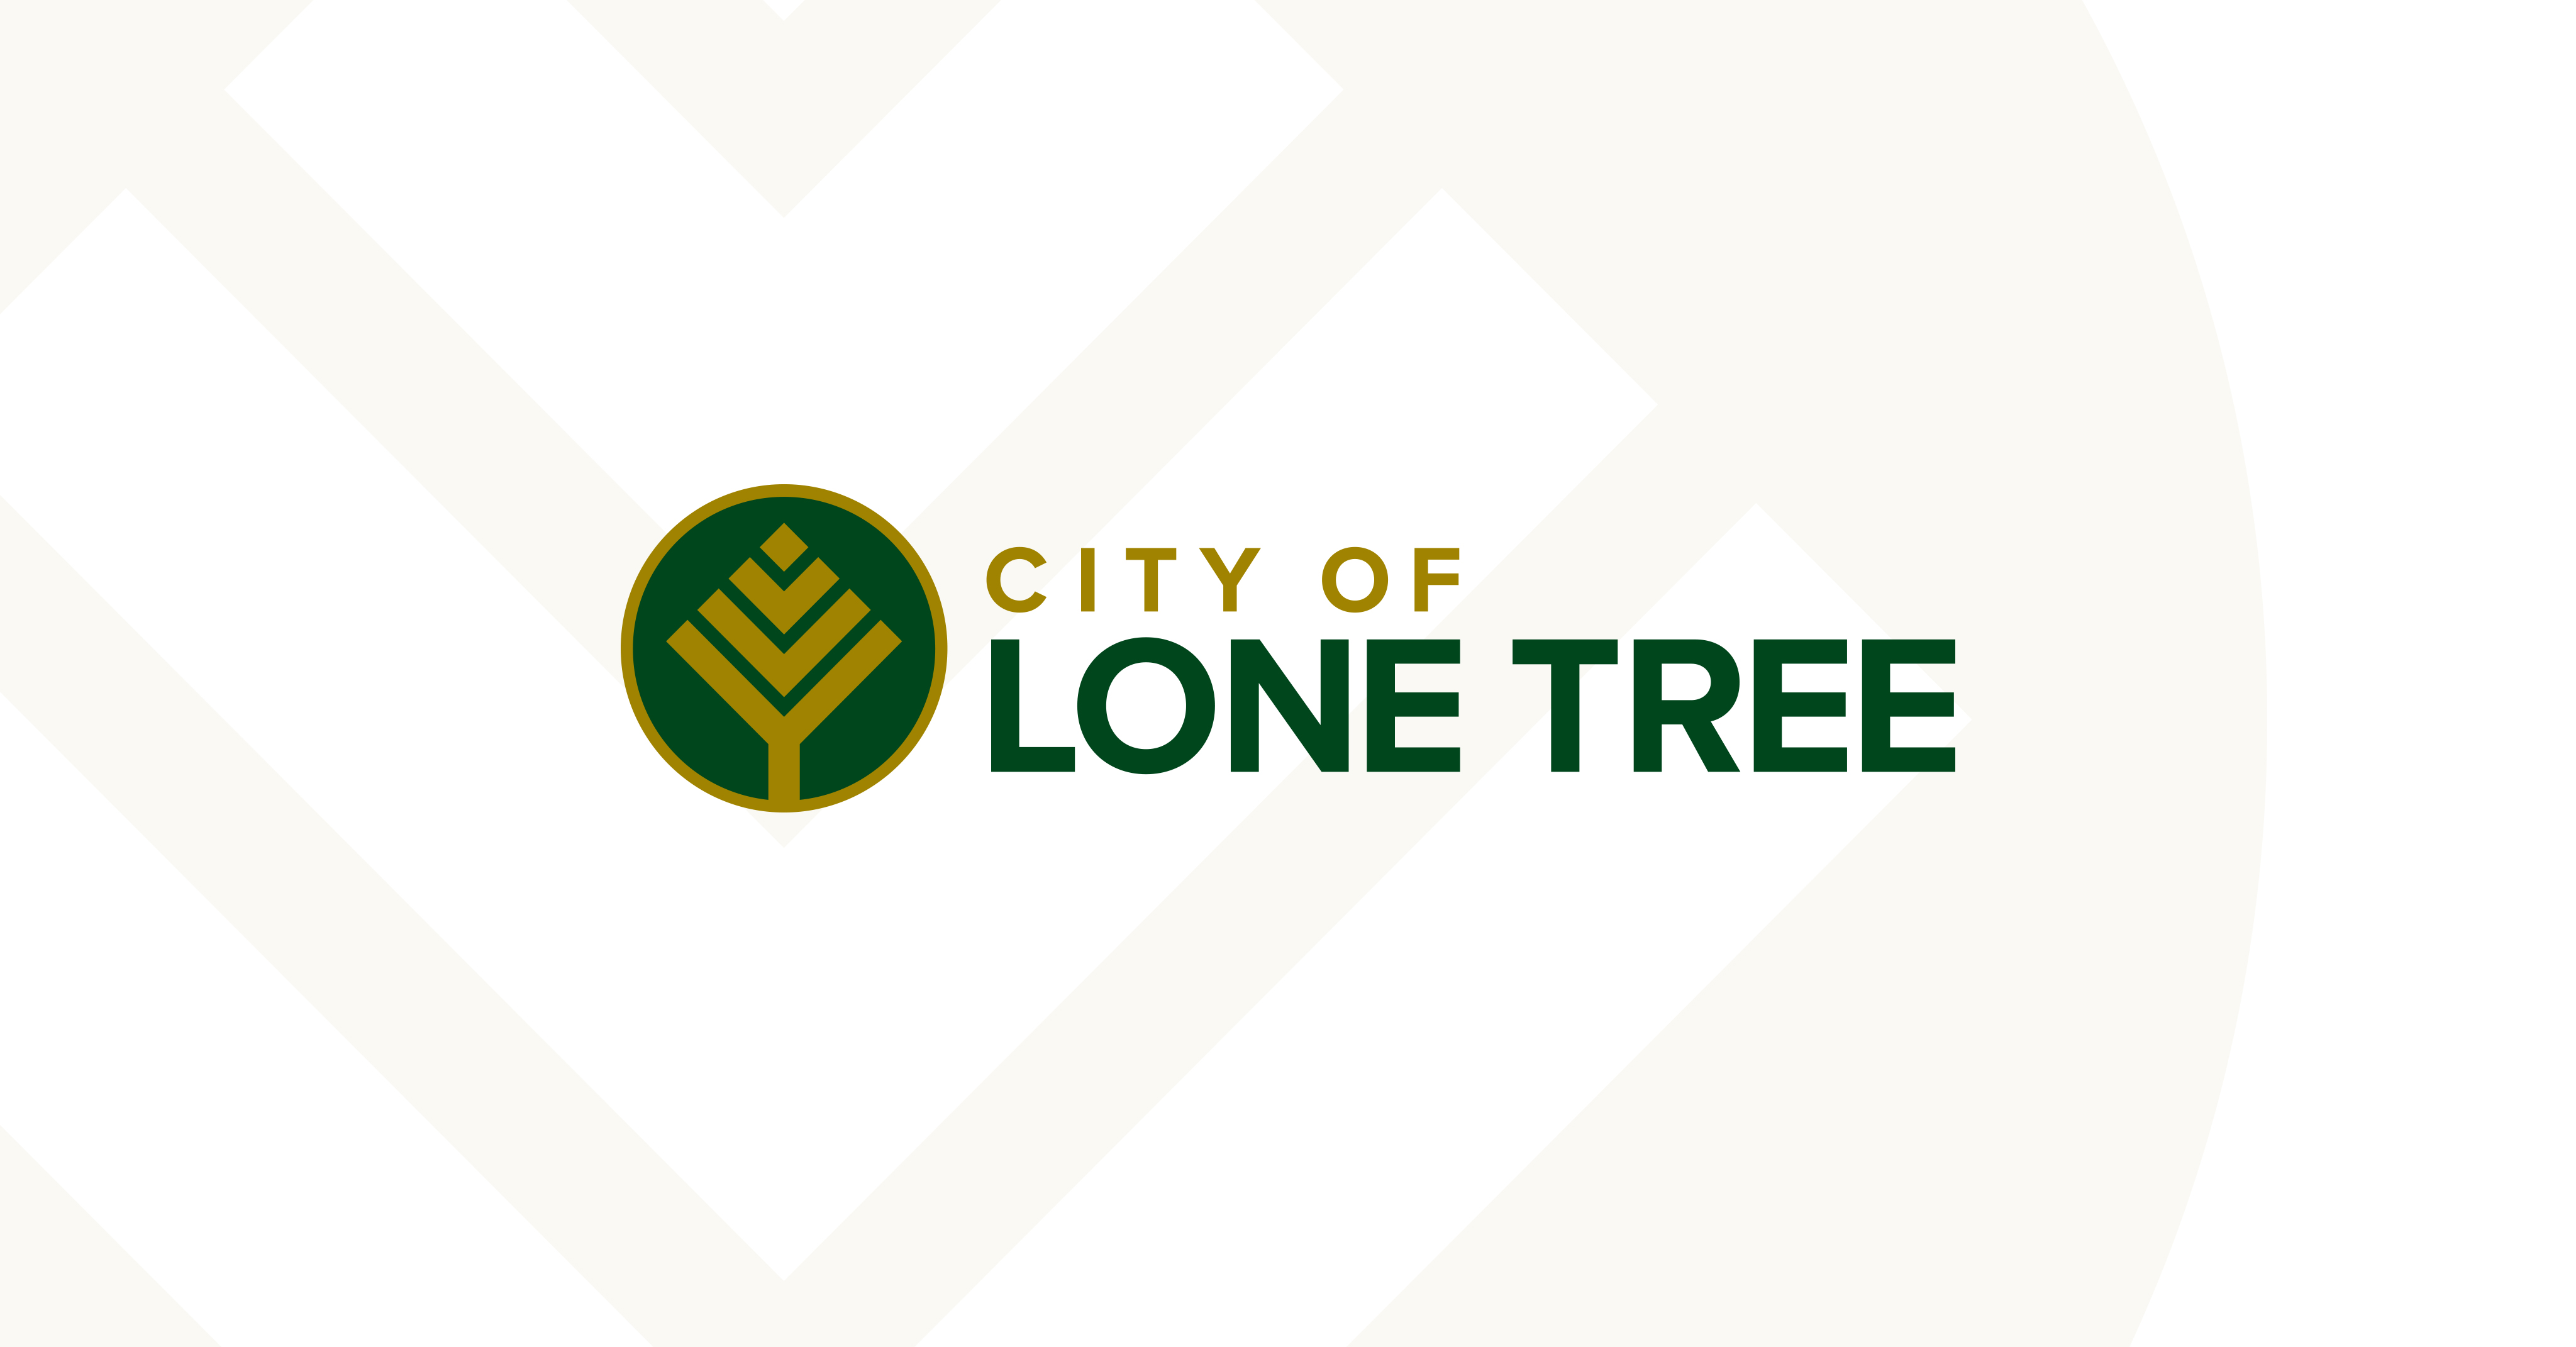 Planning Commission - City of Lone Tree